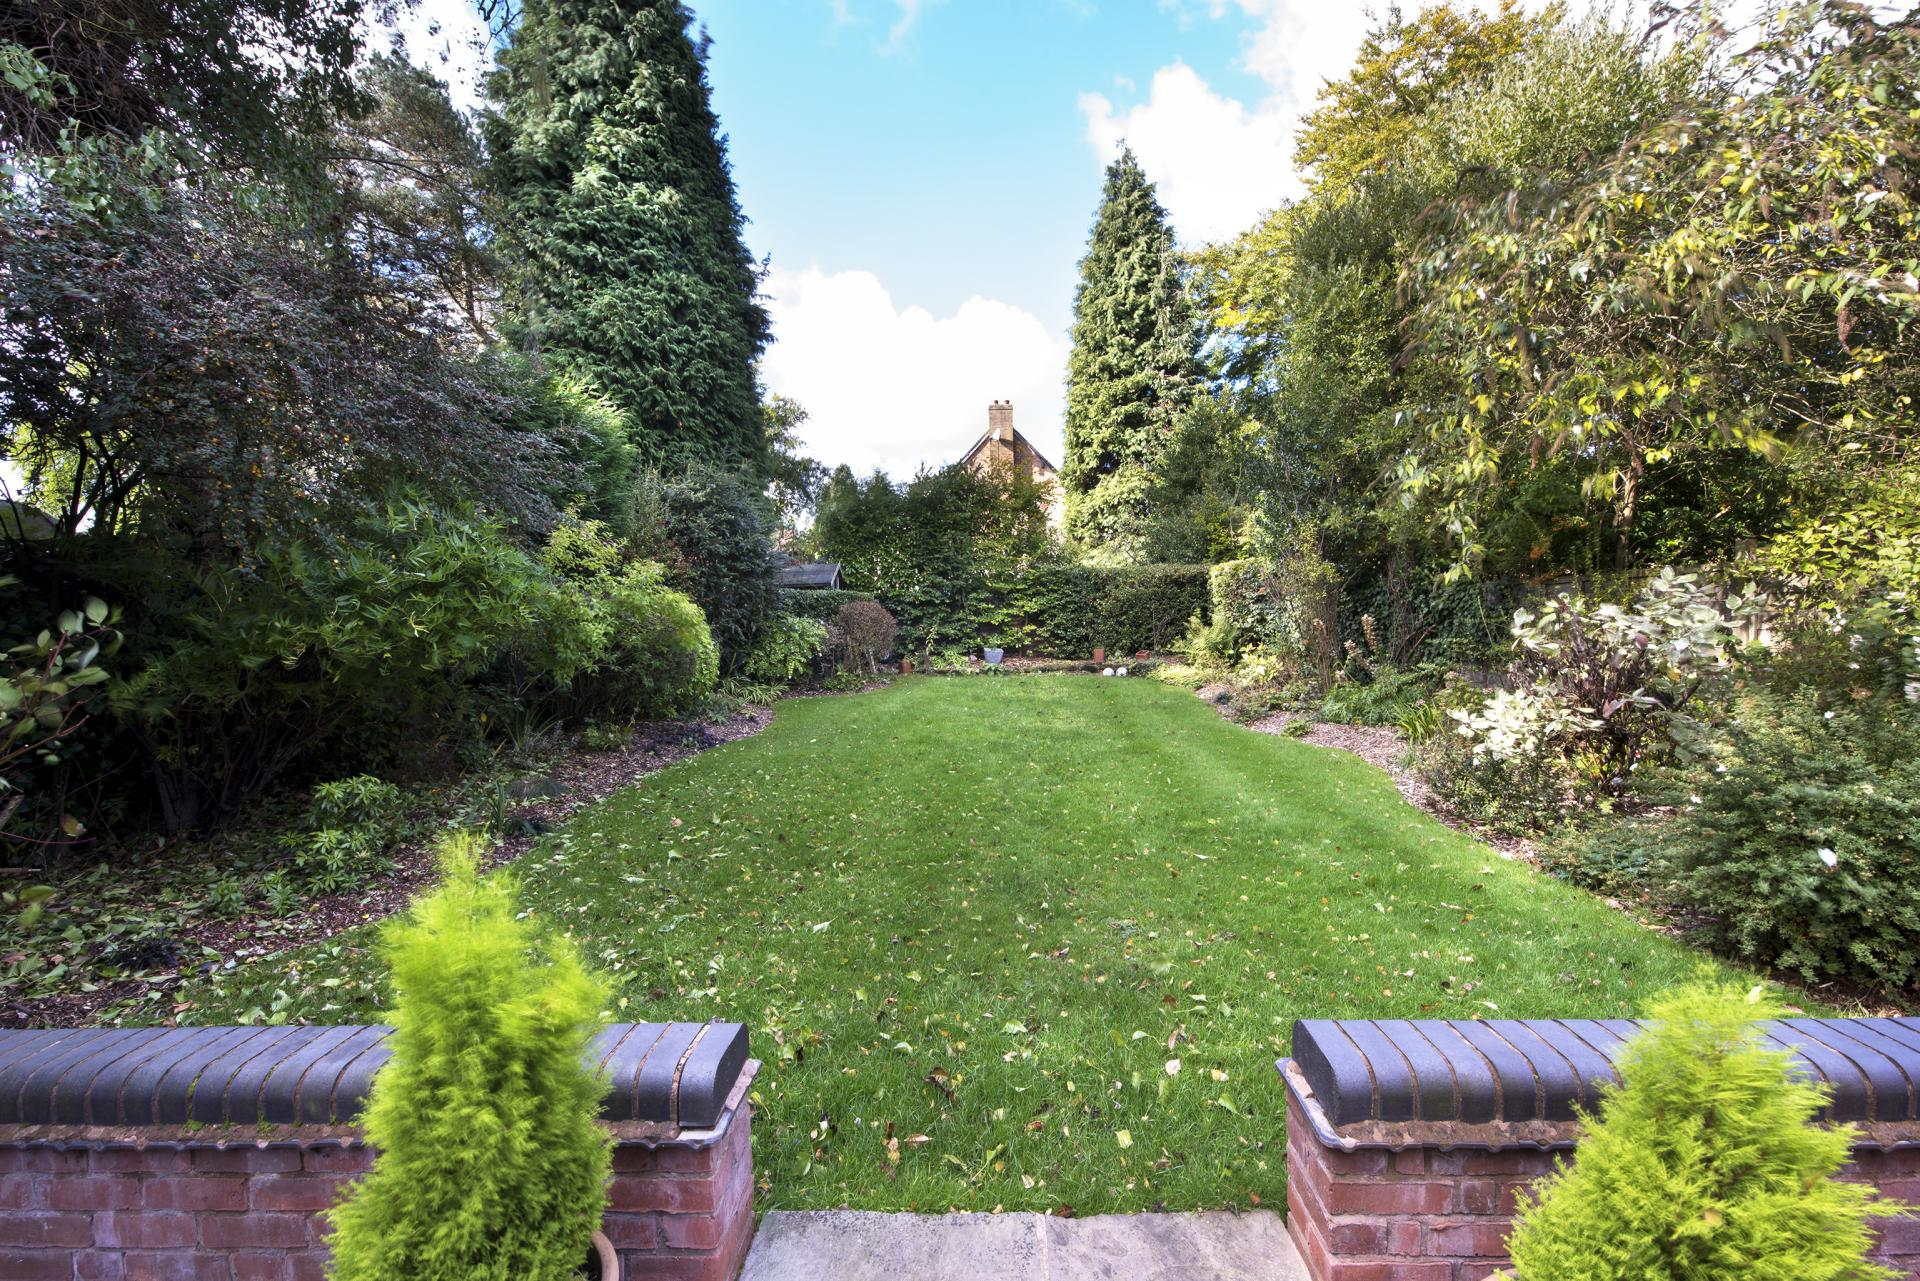 5 Bedroom House For Sale In Sutton Coldfield